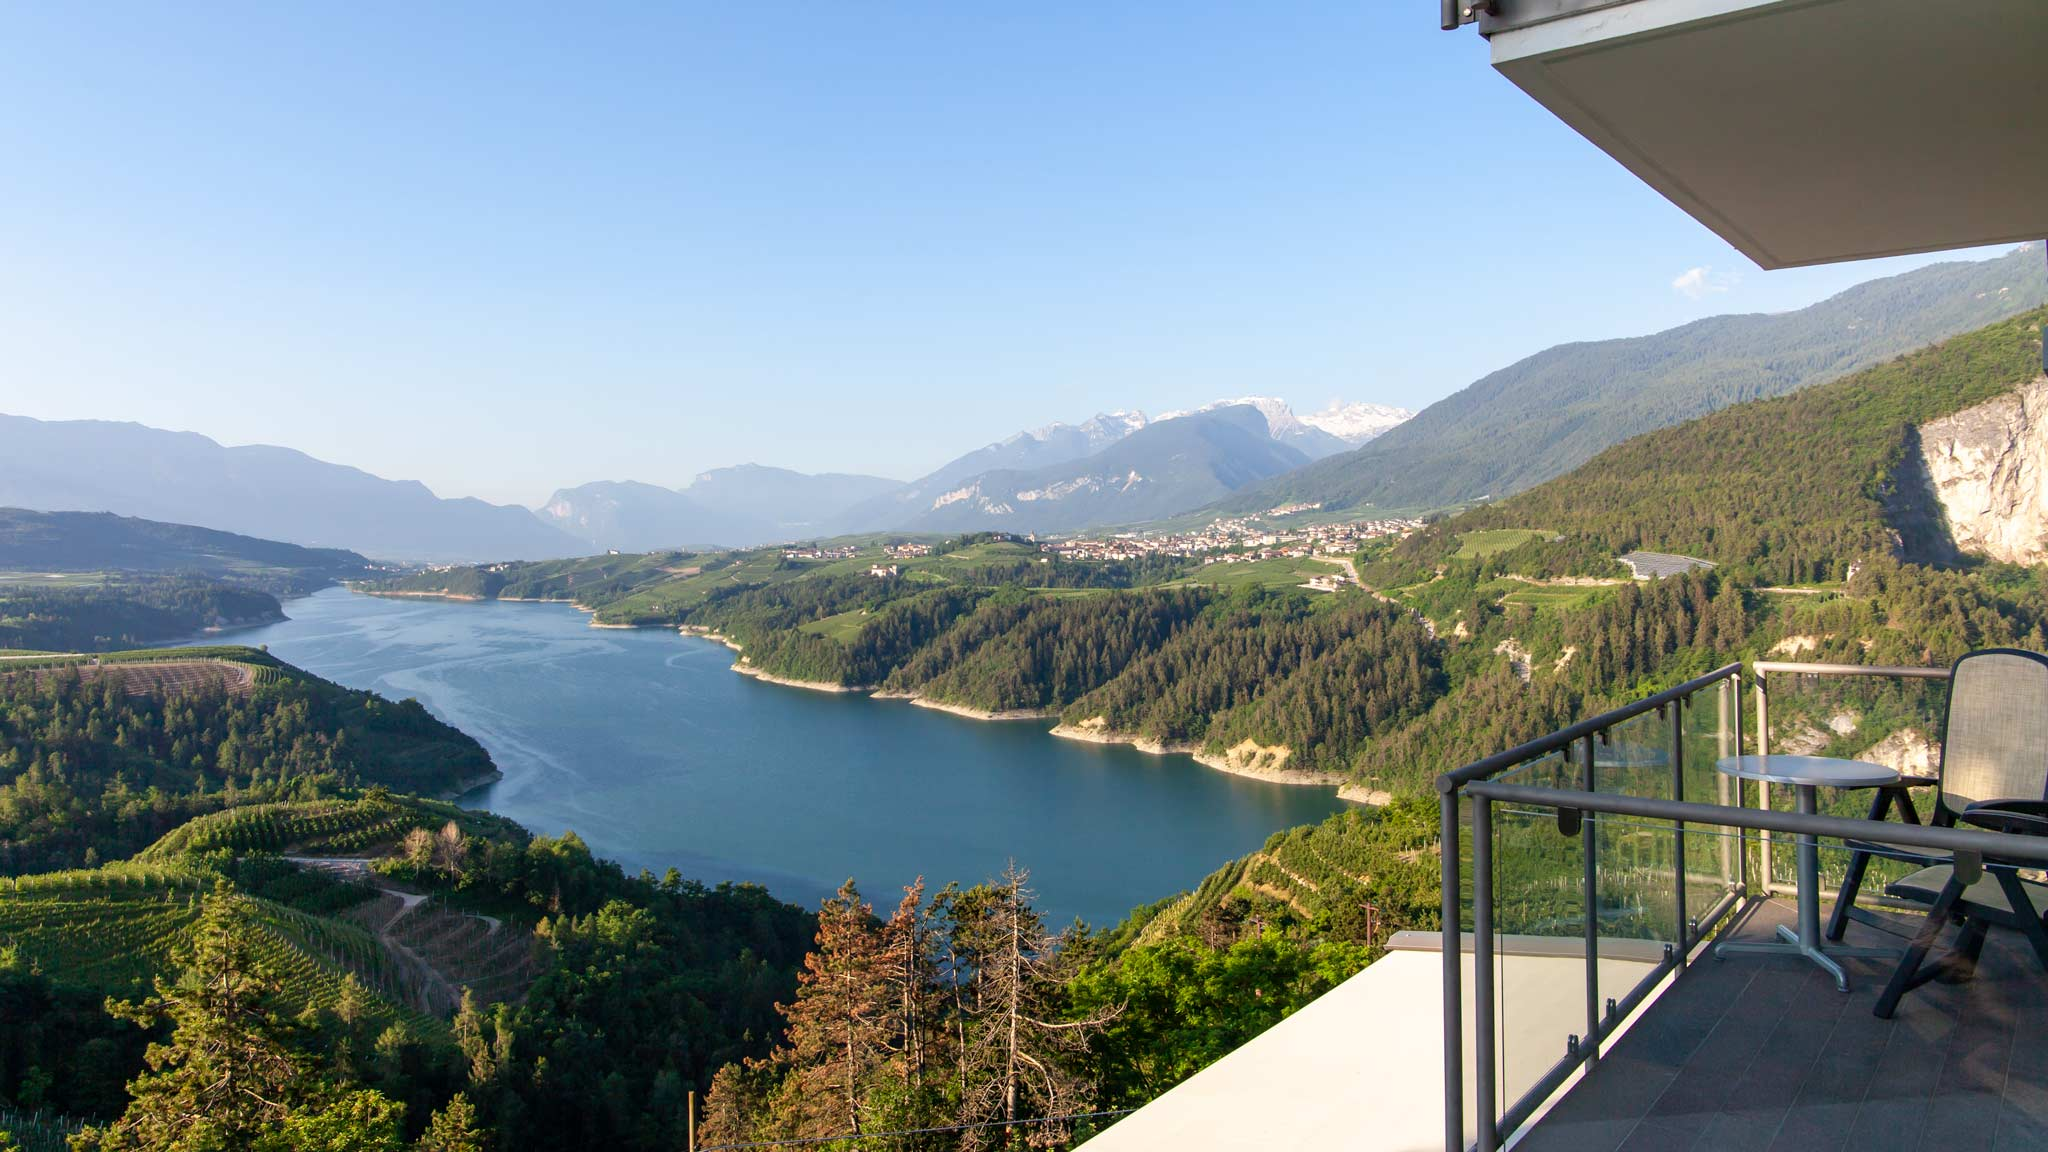 The incredible views from Hotel Vidris in Val Di Non overlooking the lake